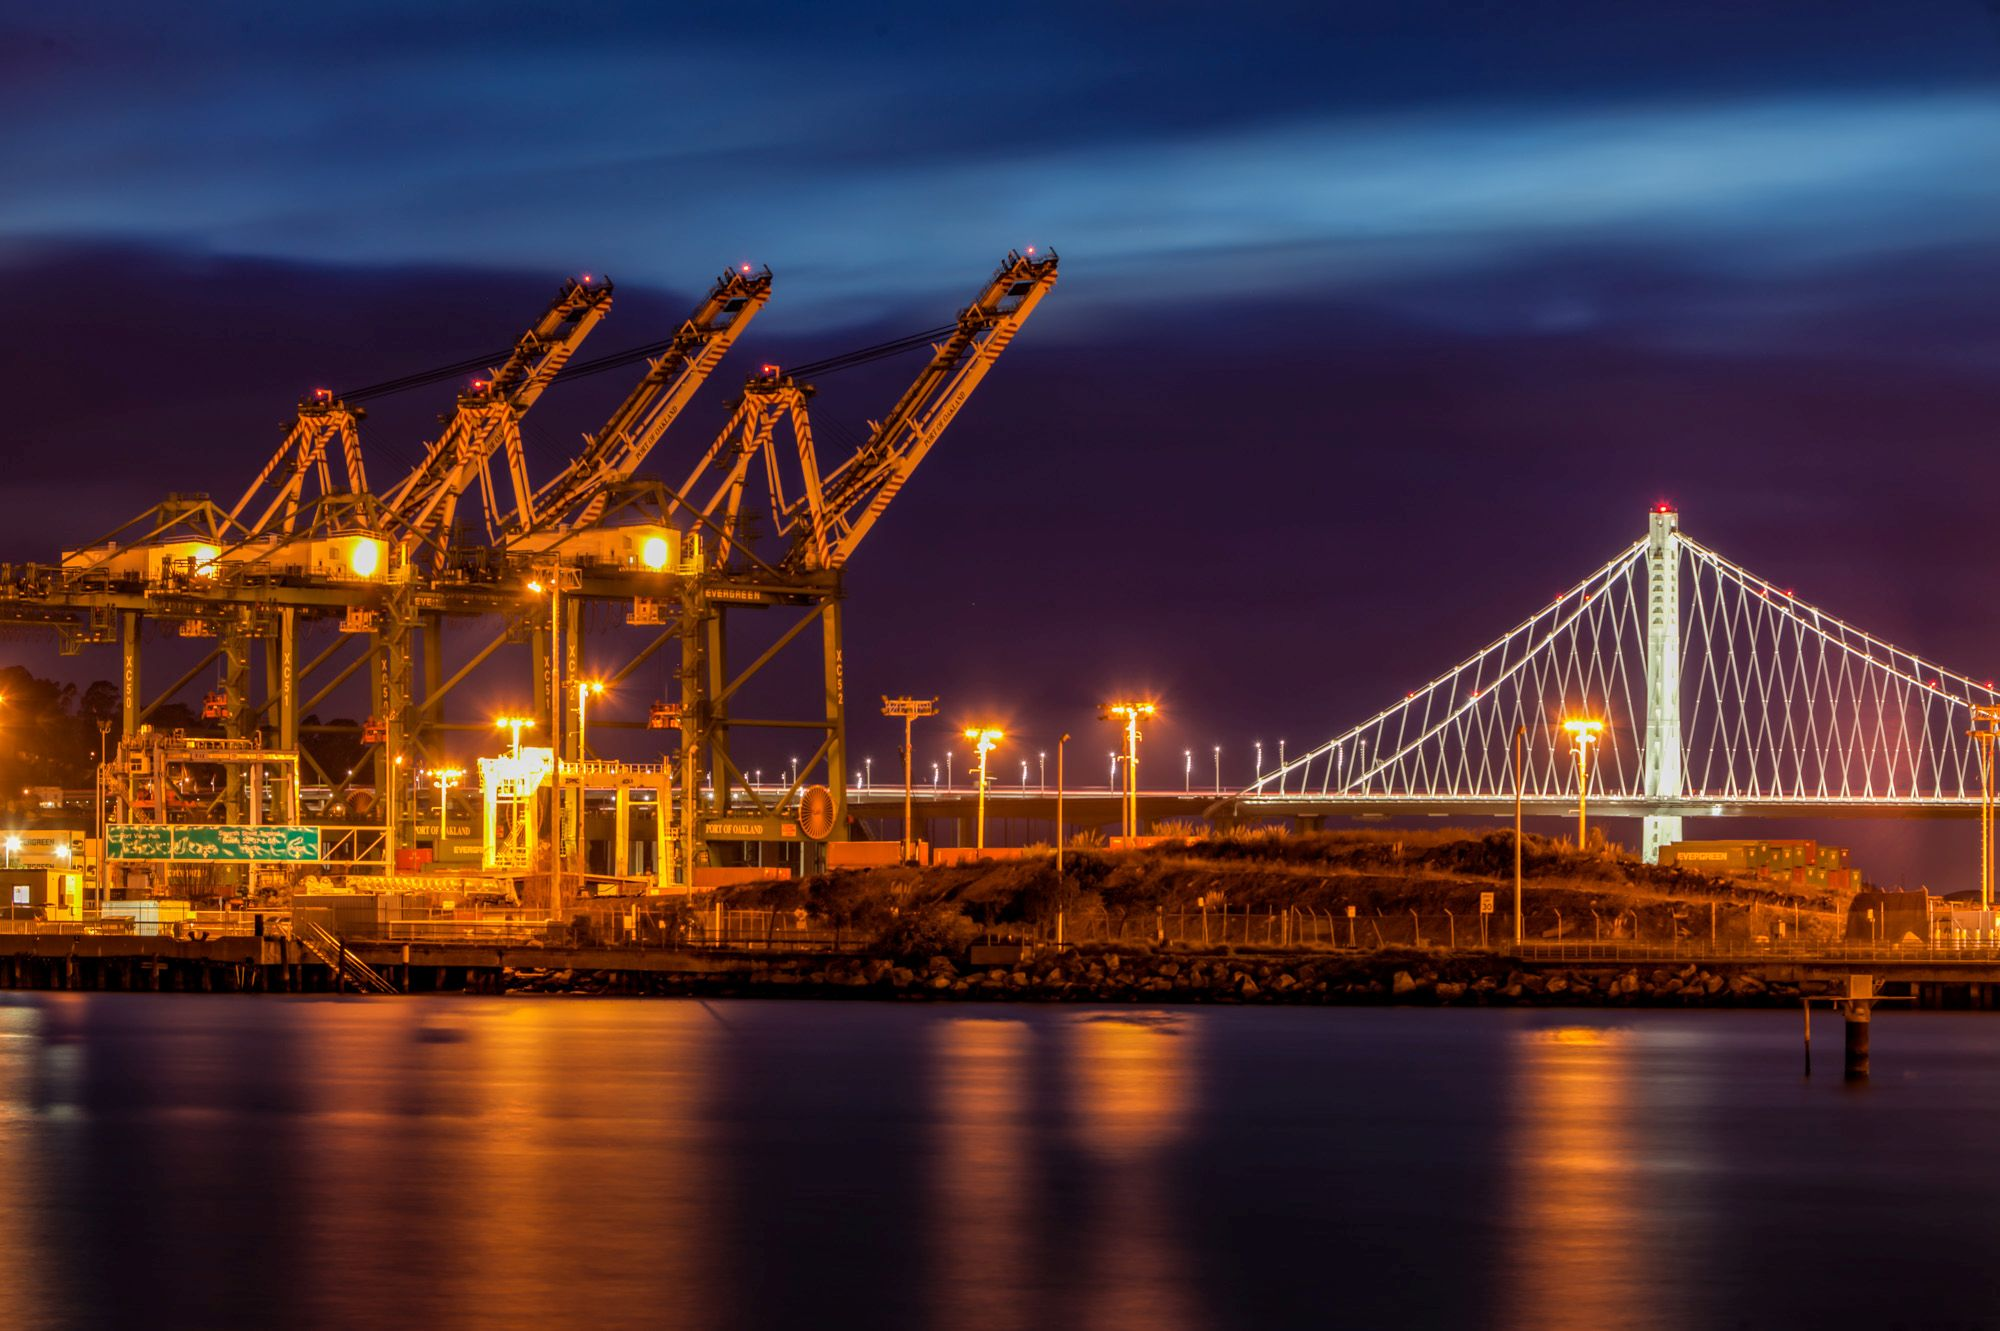 Port of Oakland Night Shoot